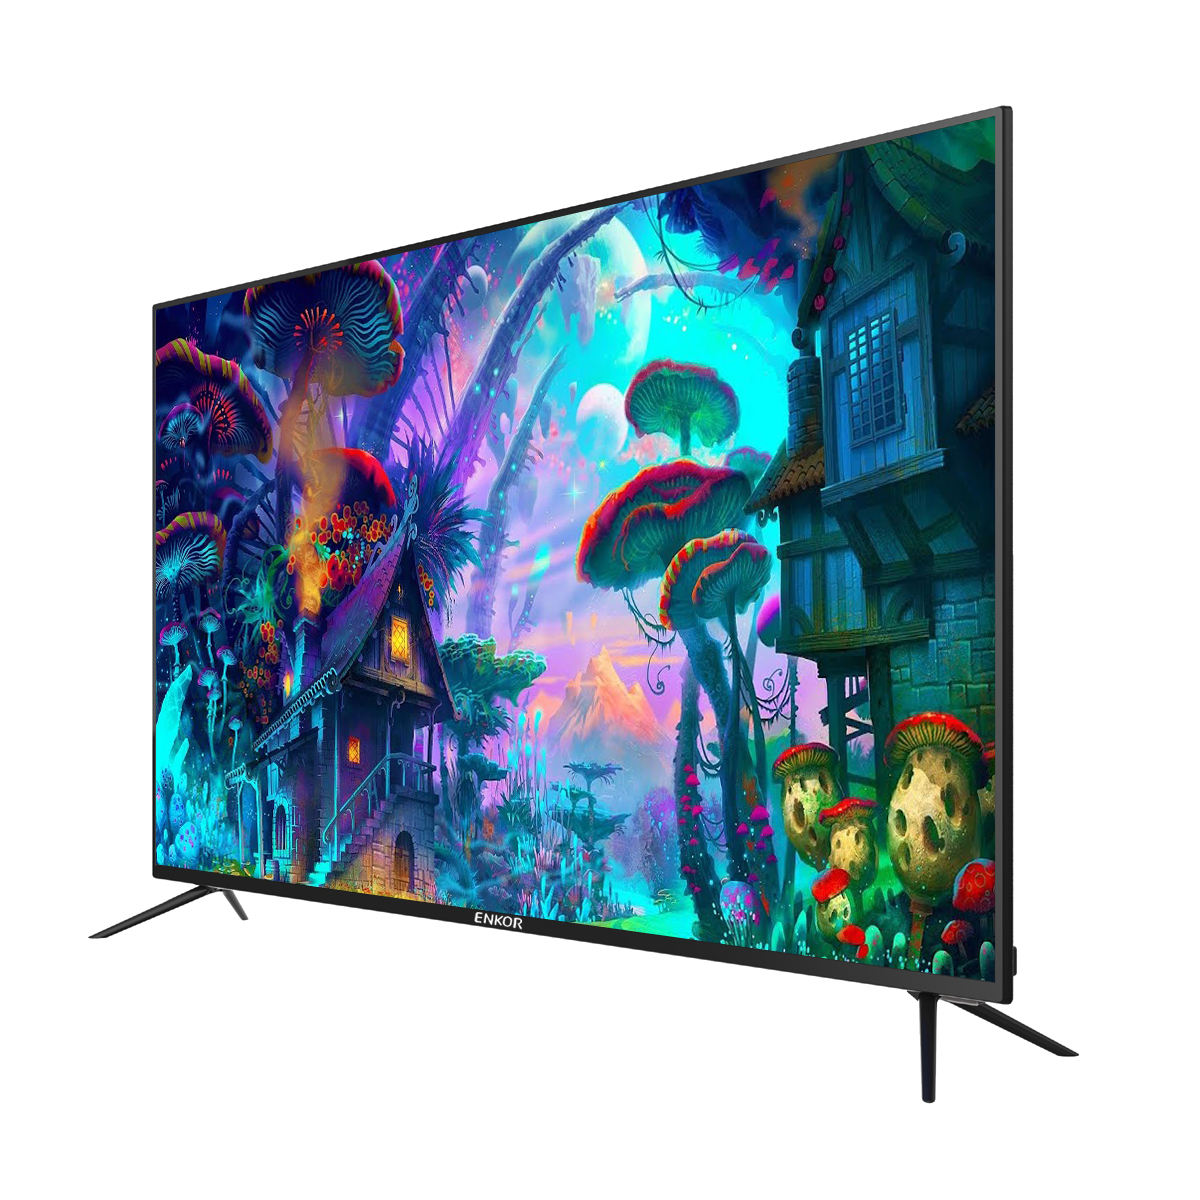 Full HD Televisi dengan Wifi LED TV dari China LED Televisi 4K Smart TV 32 39 40 43 50 55 Inch dengan HD FHD UHD Biasanya LED TV